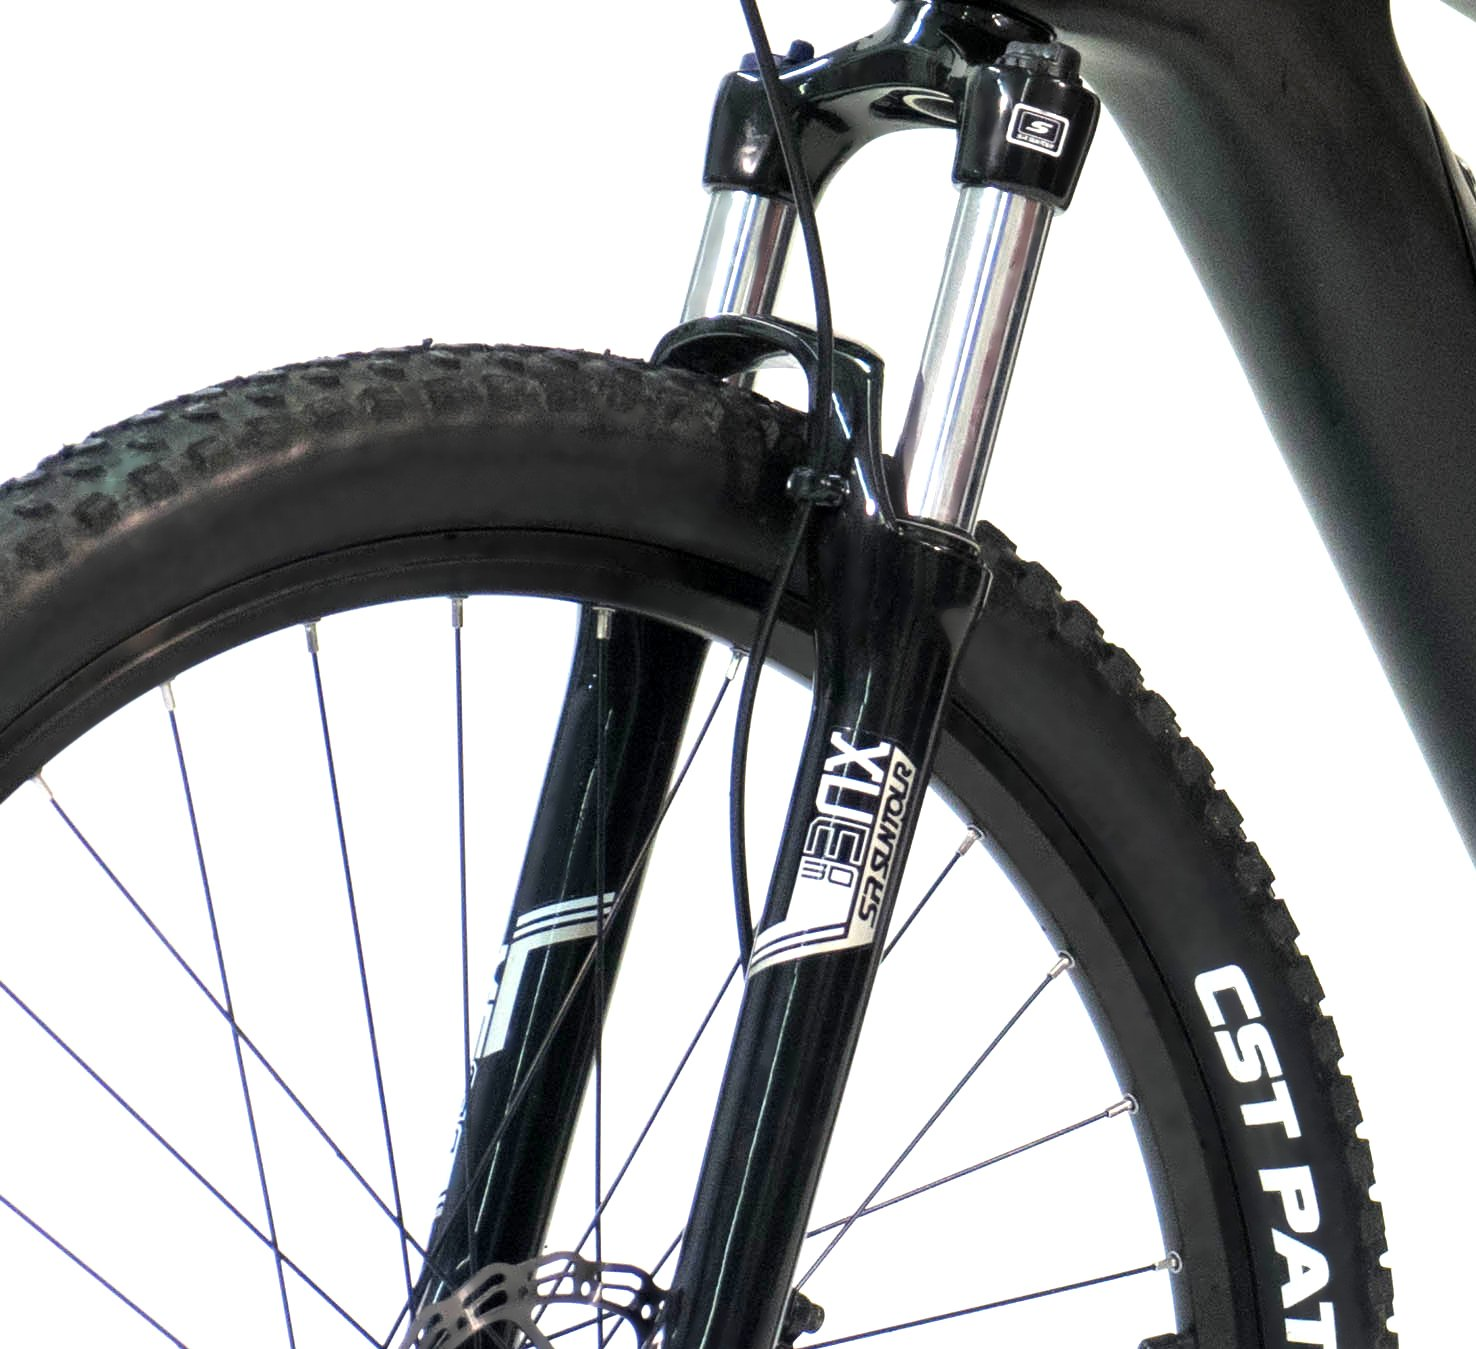 Electric mountain bike front suspension